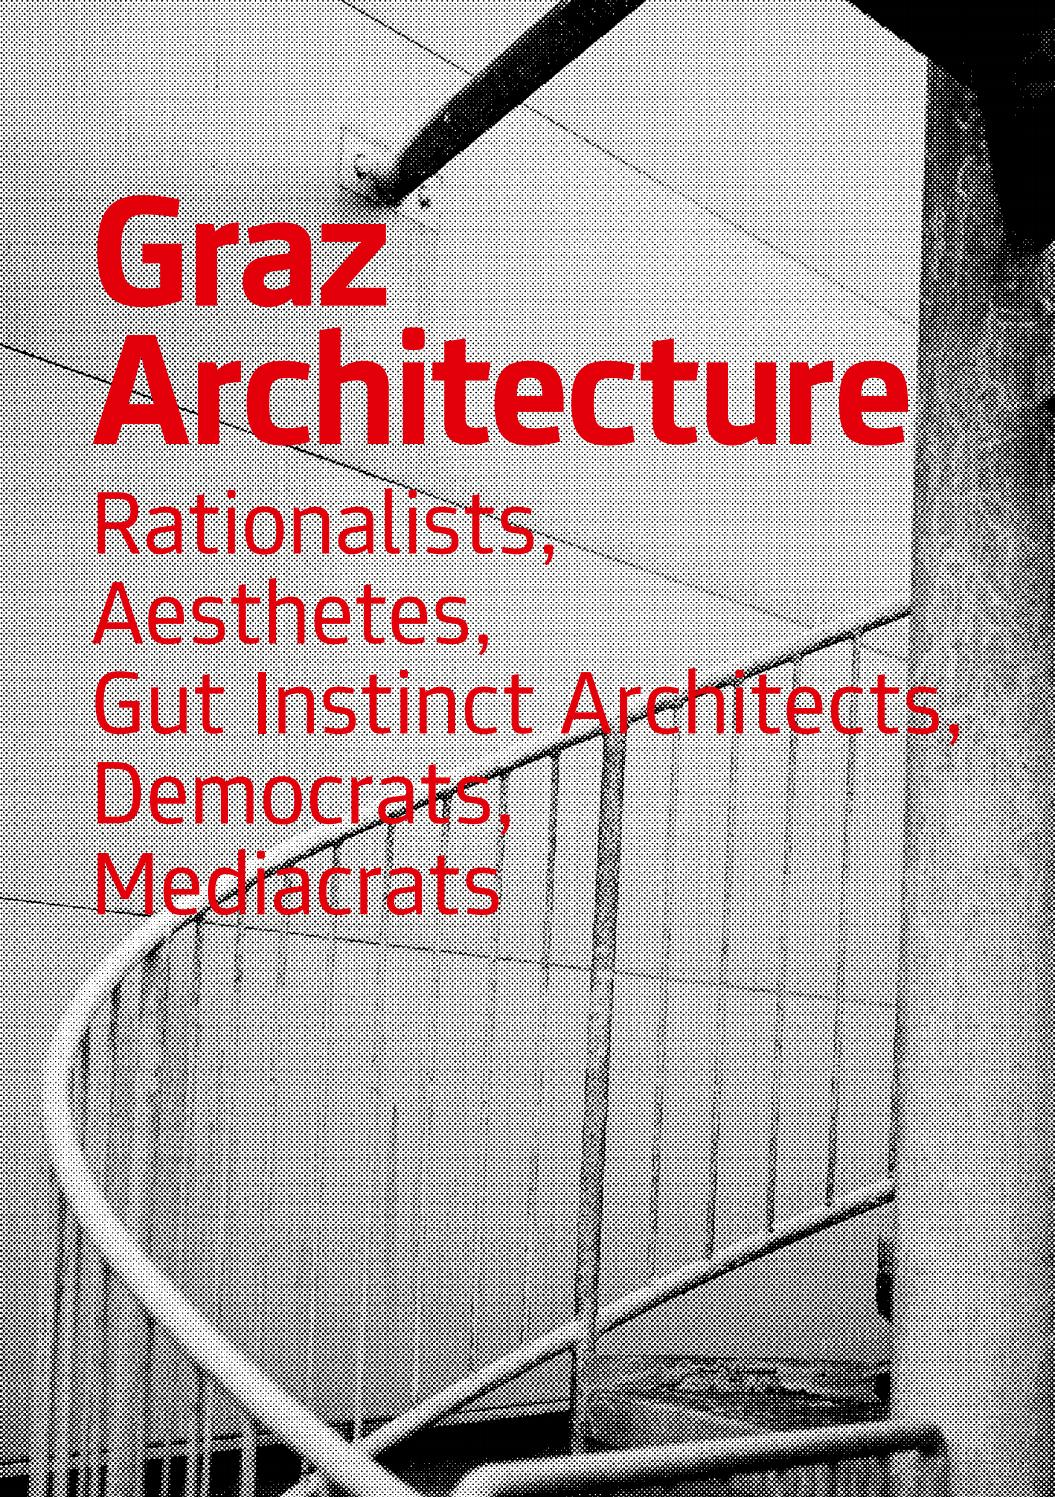 Container Haus Graz Graz Architecture Rationalists Aesthetes Gut Instinct